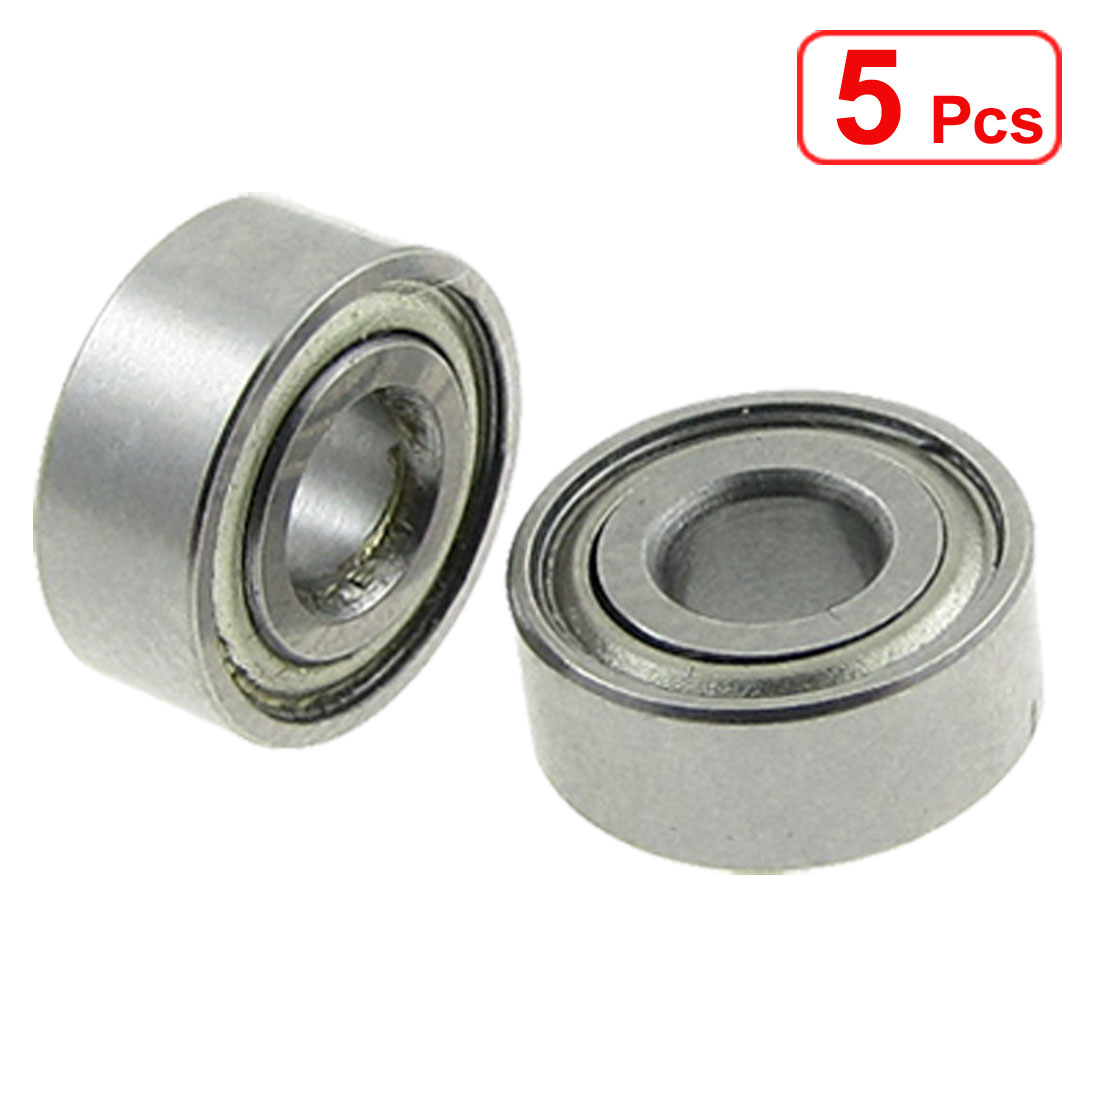 Unique Bargains 5 Pcs 4 x 10 x 4mm Double Shielded Deep Groove Ball Bearings - image 1 de 1